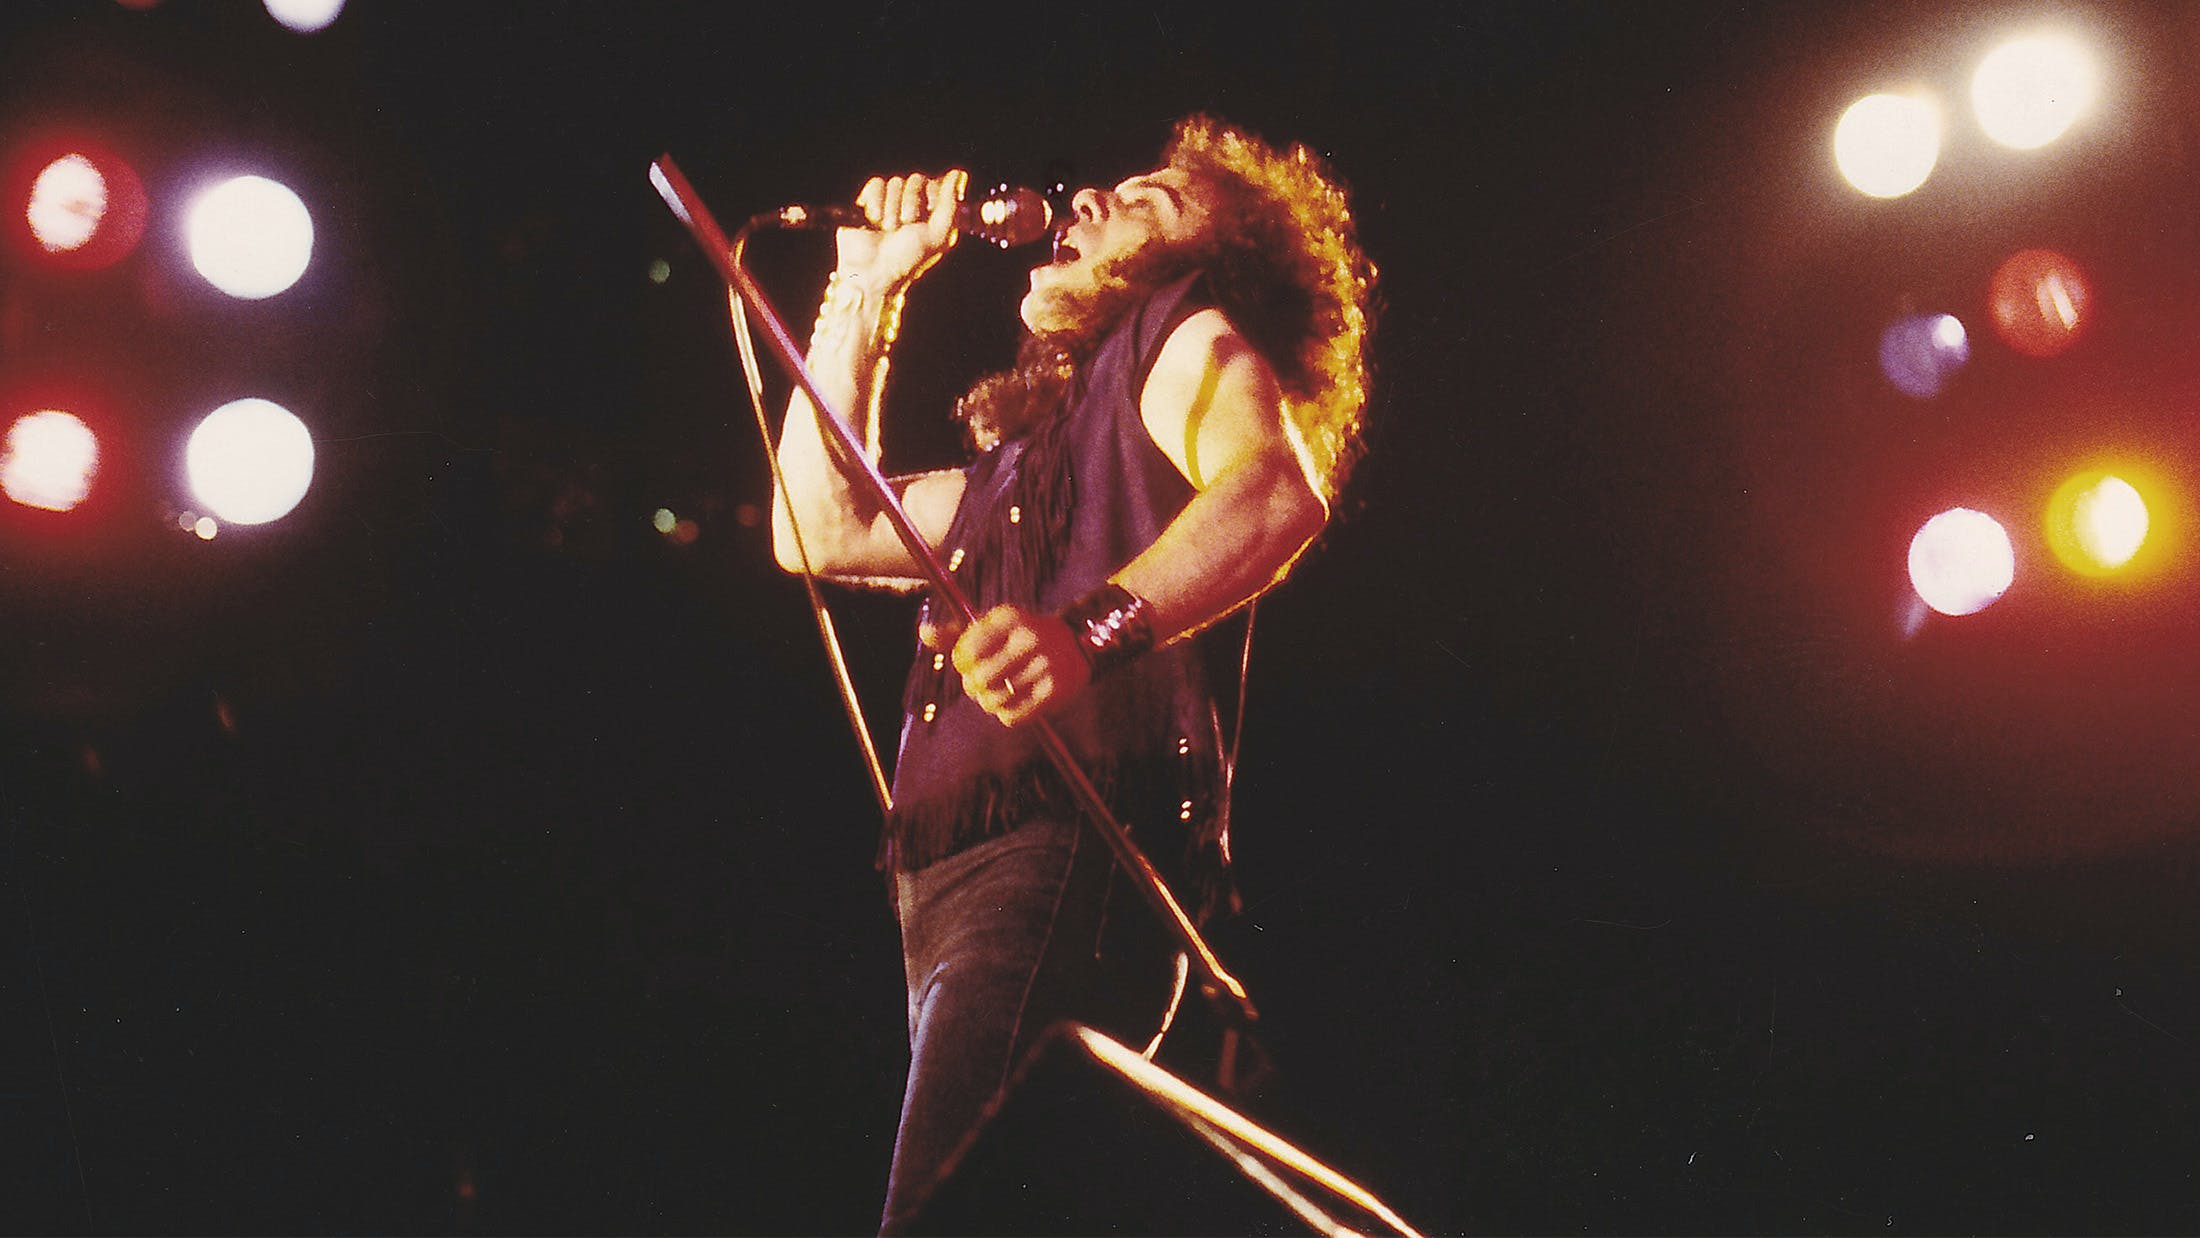 18 Things You Probably Didn't Know About Ronnie James Dio